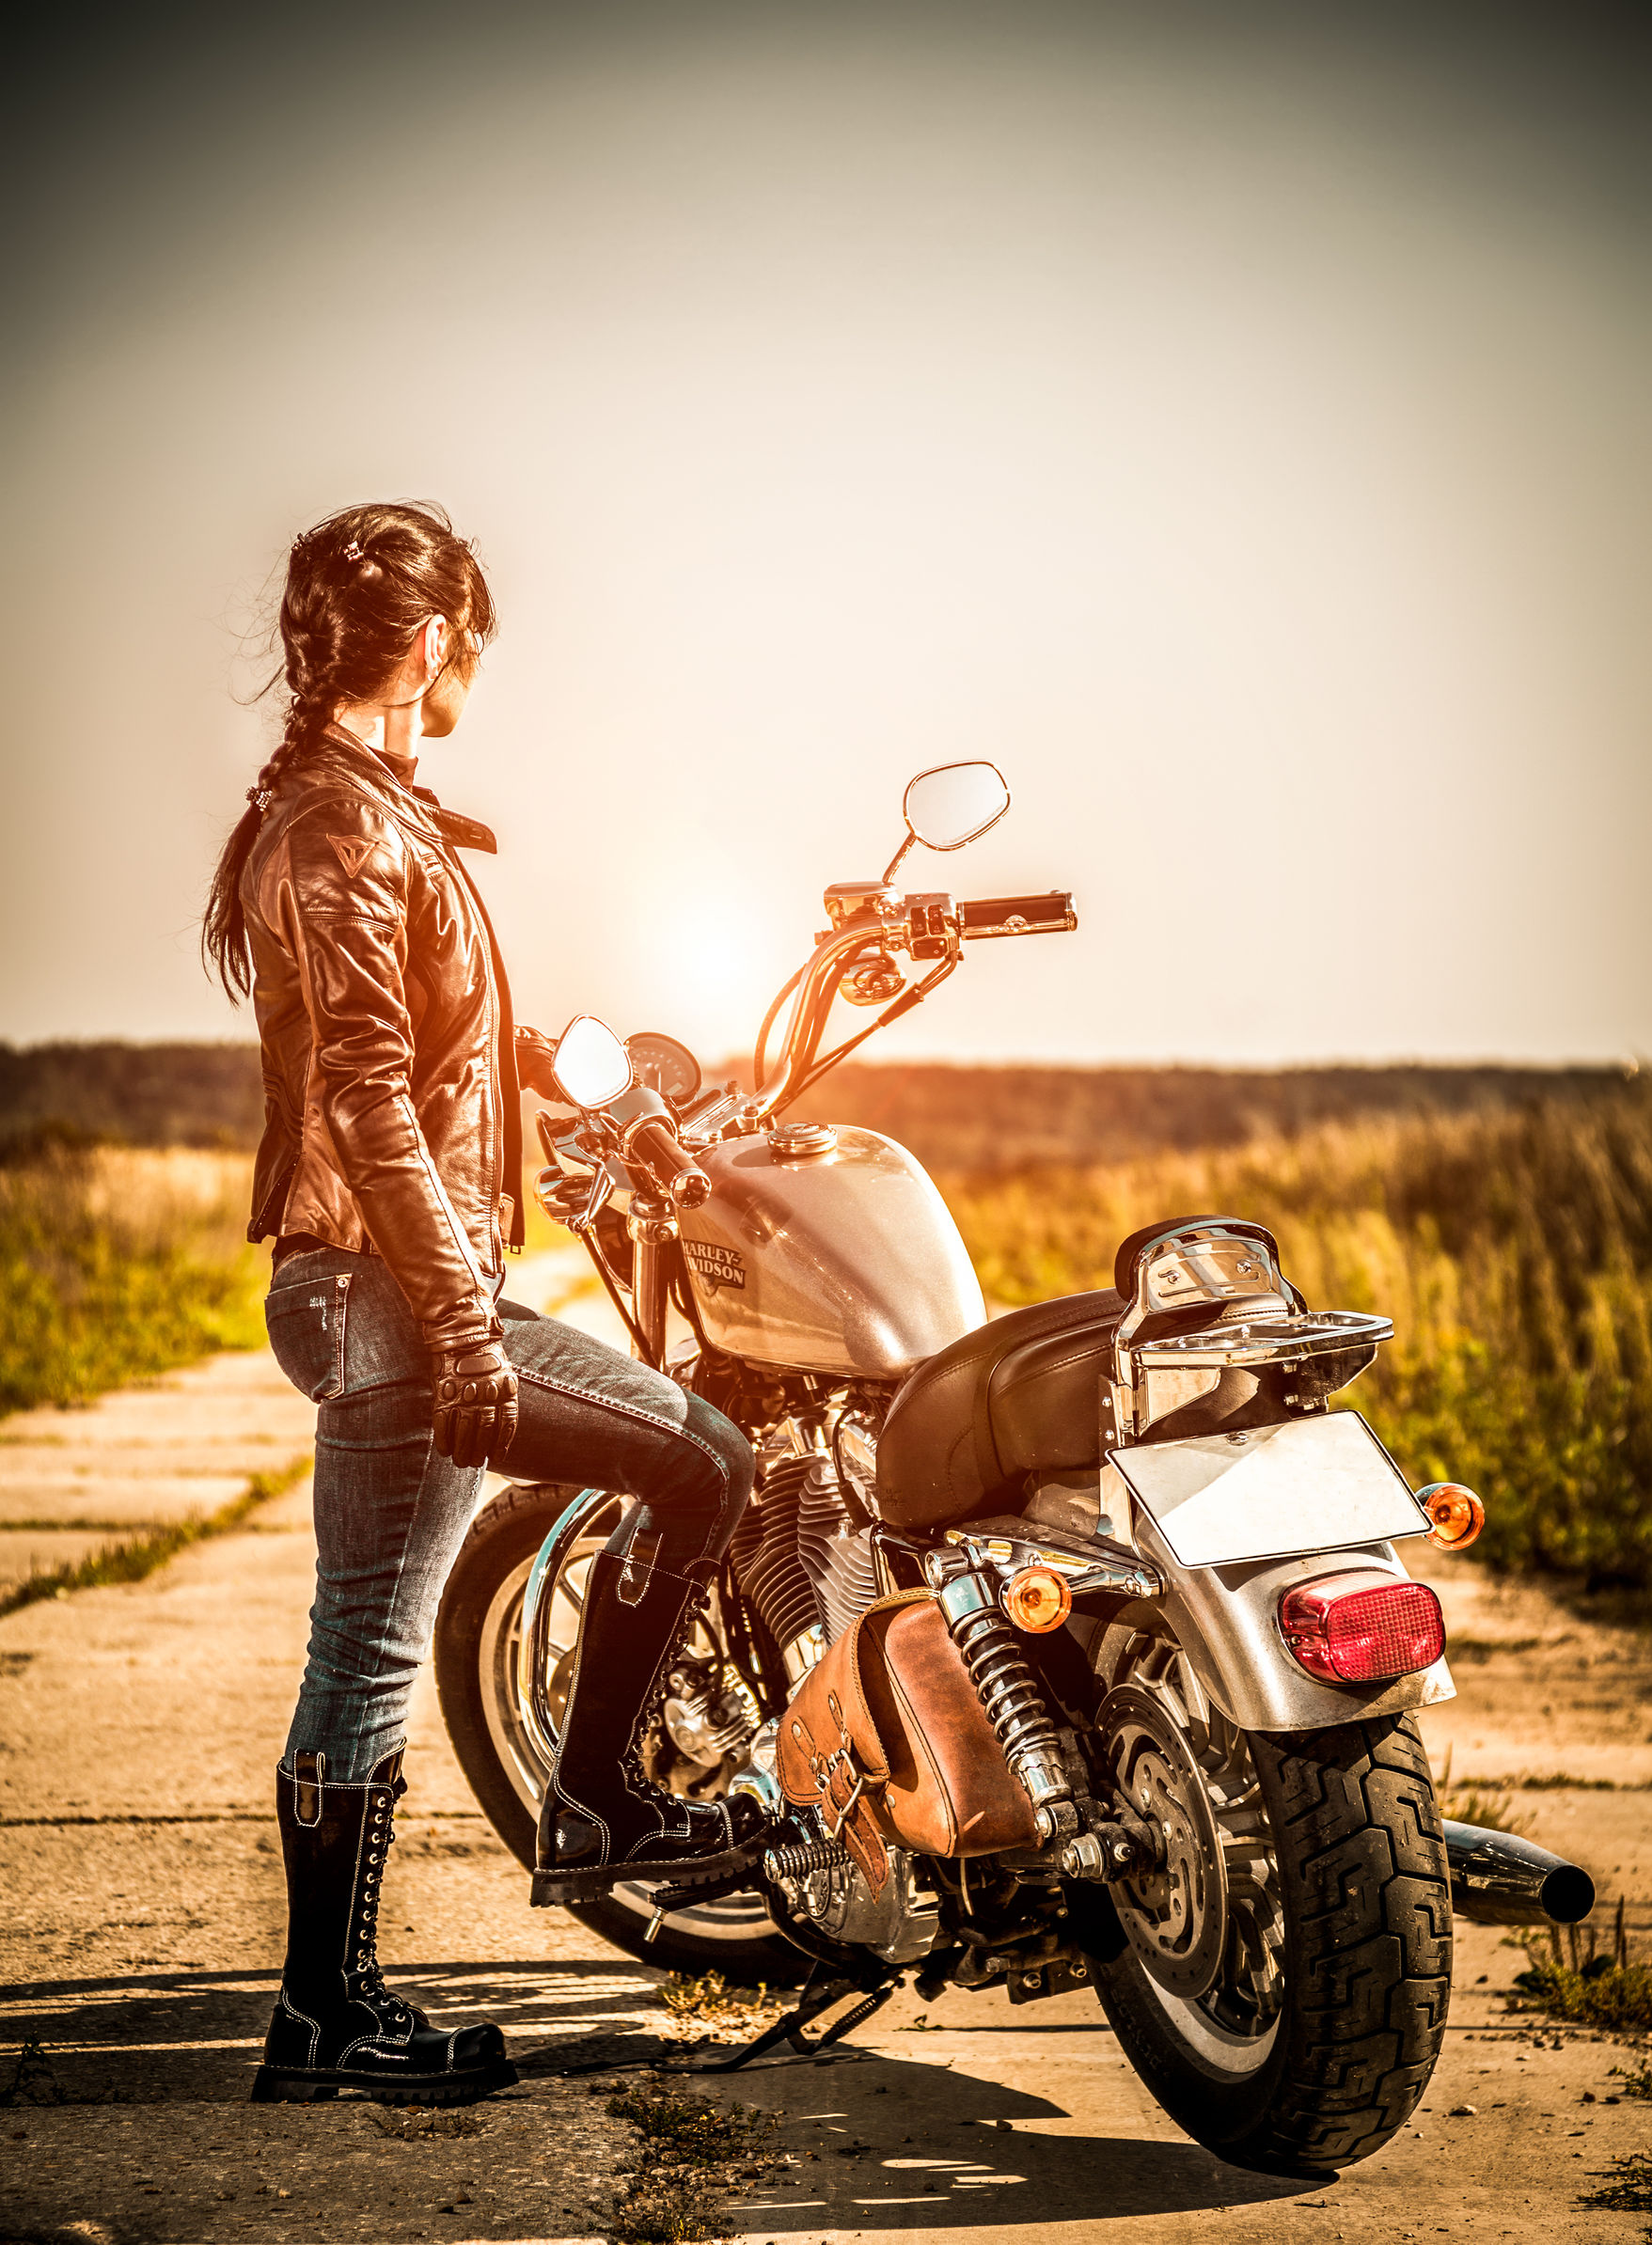 28360792 - russia-july 7, 2013: biker girl and bike harley sportster. harley davidson sustains a large brand community which keeps active through clubs, events, and a museum. filter applied in post-production.